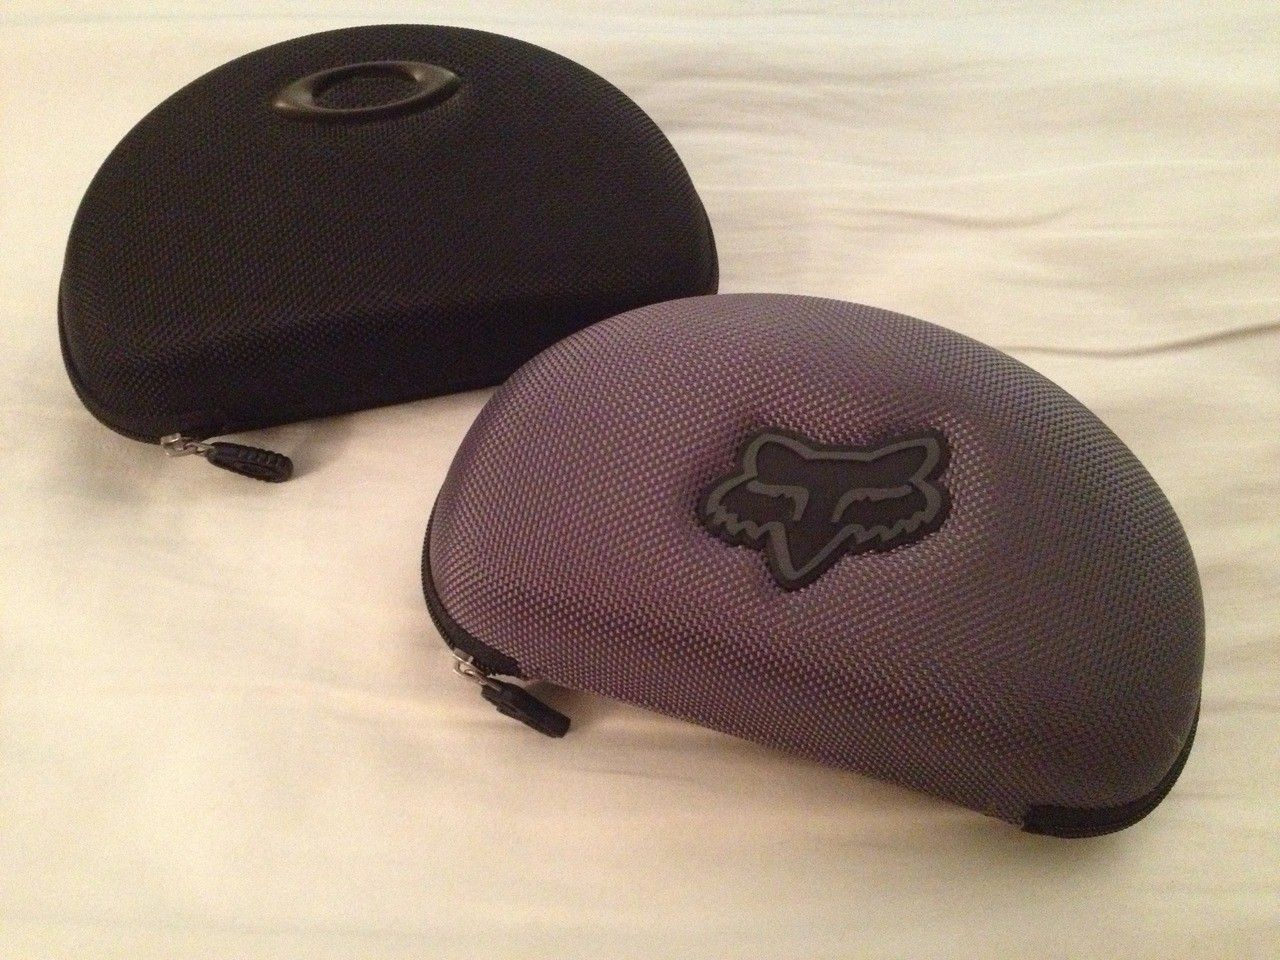 Radar Vs. Duncan Sport Review (Picture Heavy) - tumblr_mirgvnQjwQ1rbptugo1_1280.jpg